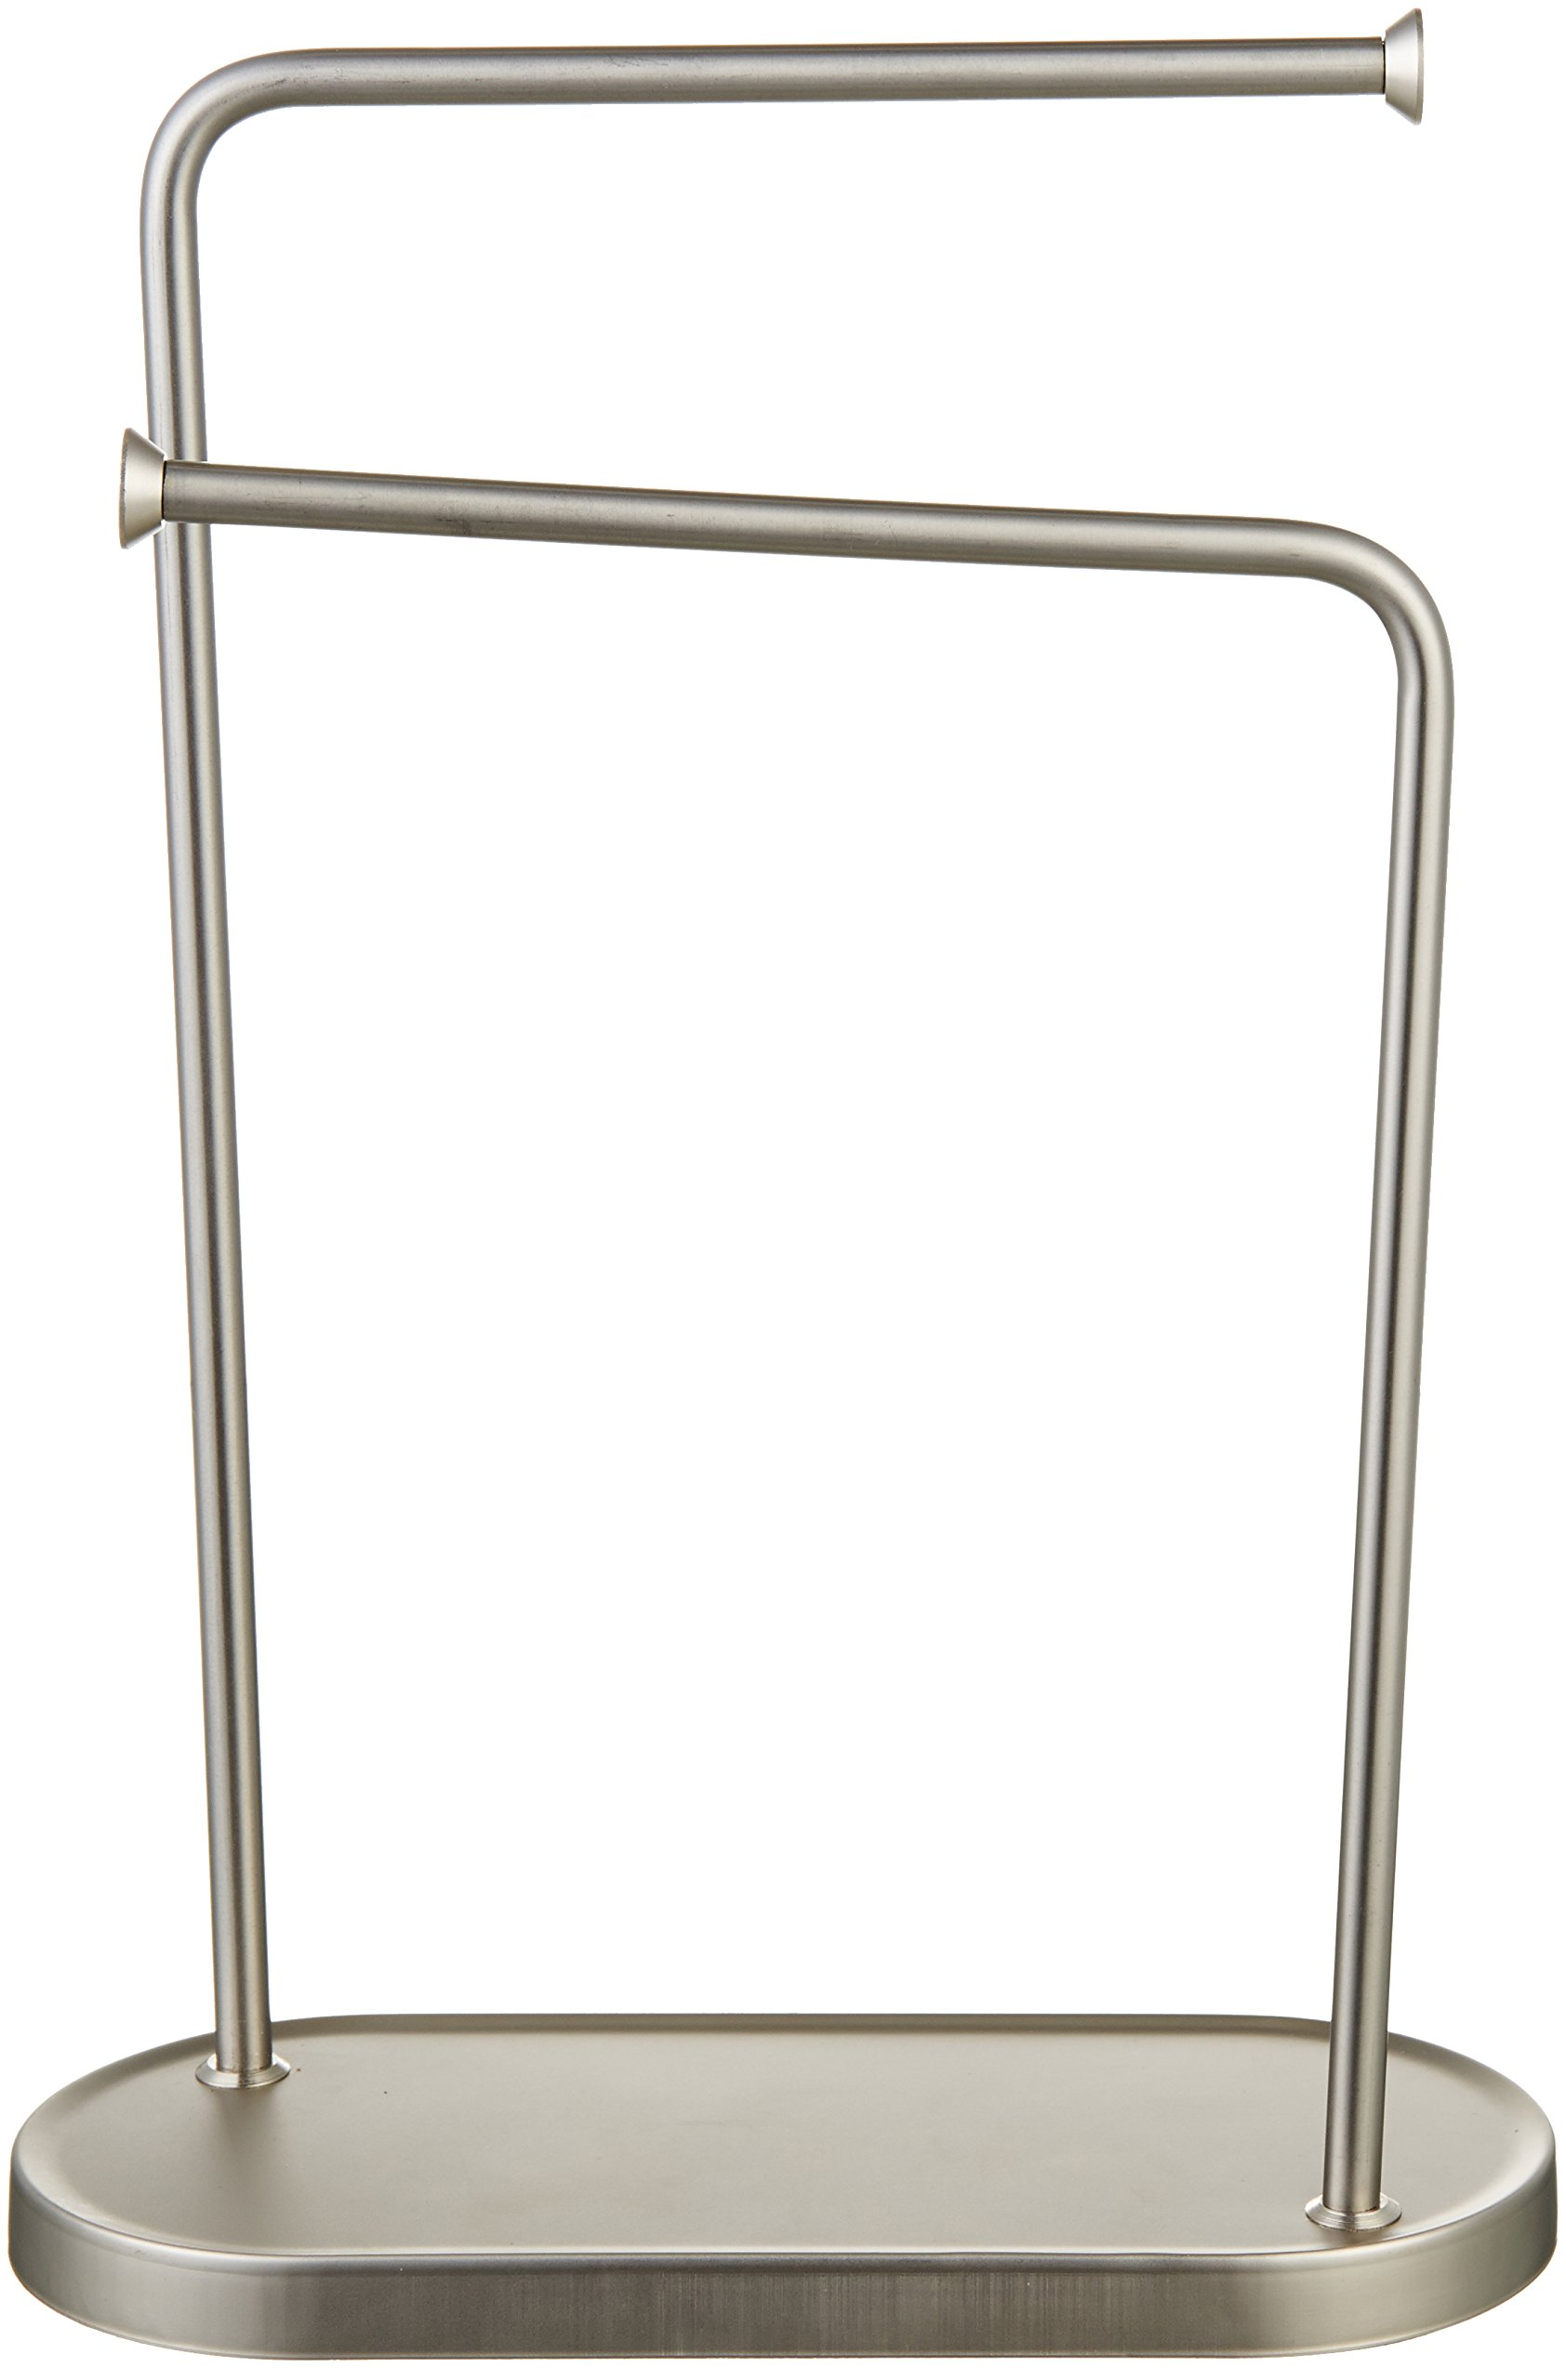 AmazonBasics Double-L Hand Towel Holder and Accessories Stand, Silver Nickel by AmazonBasics